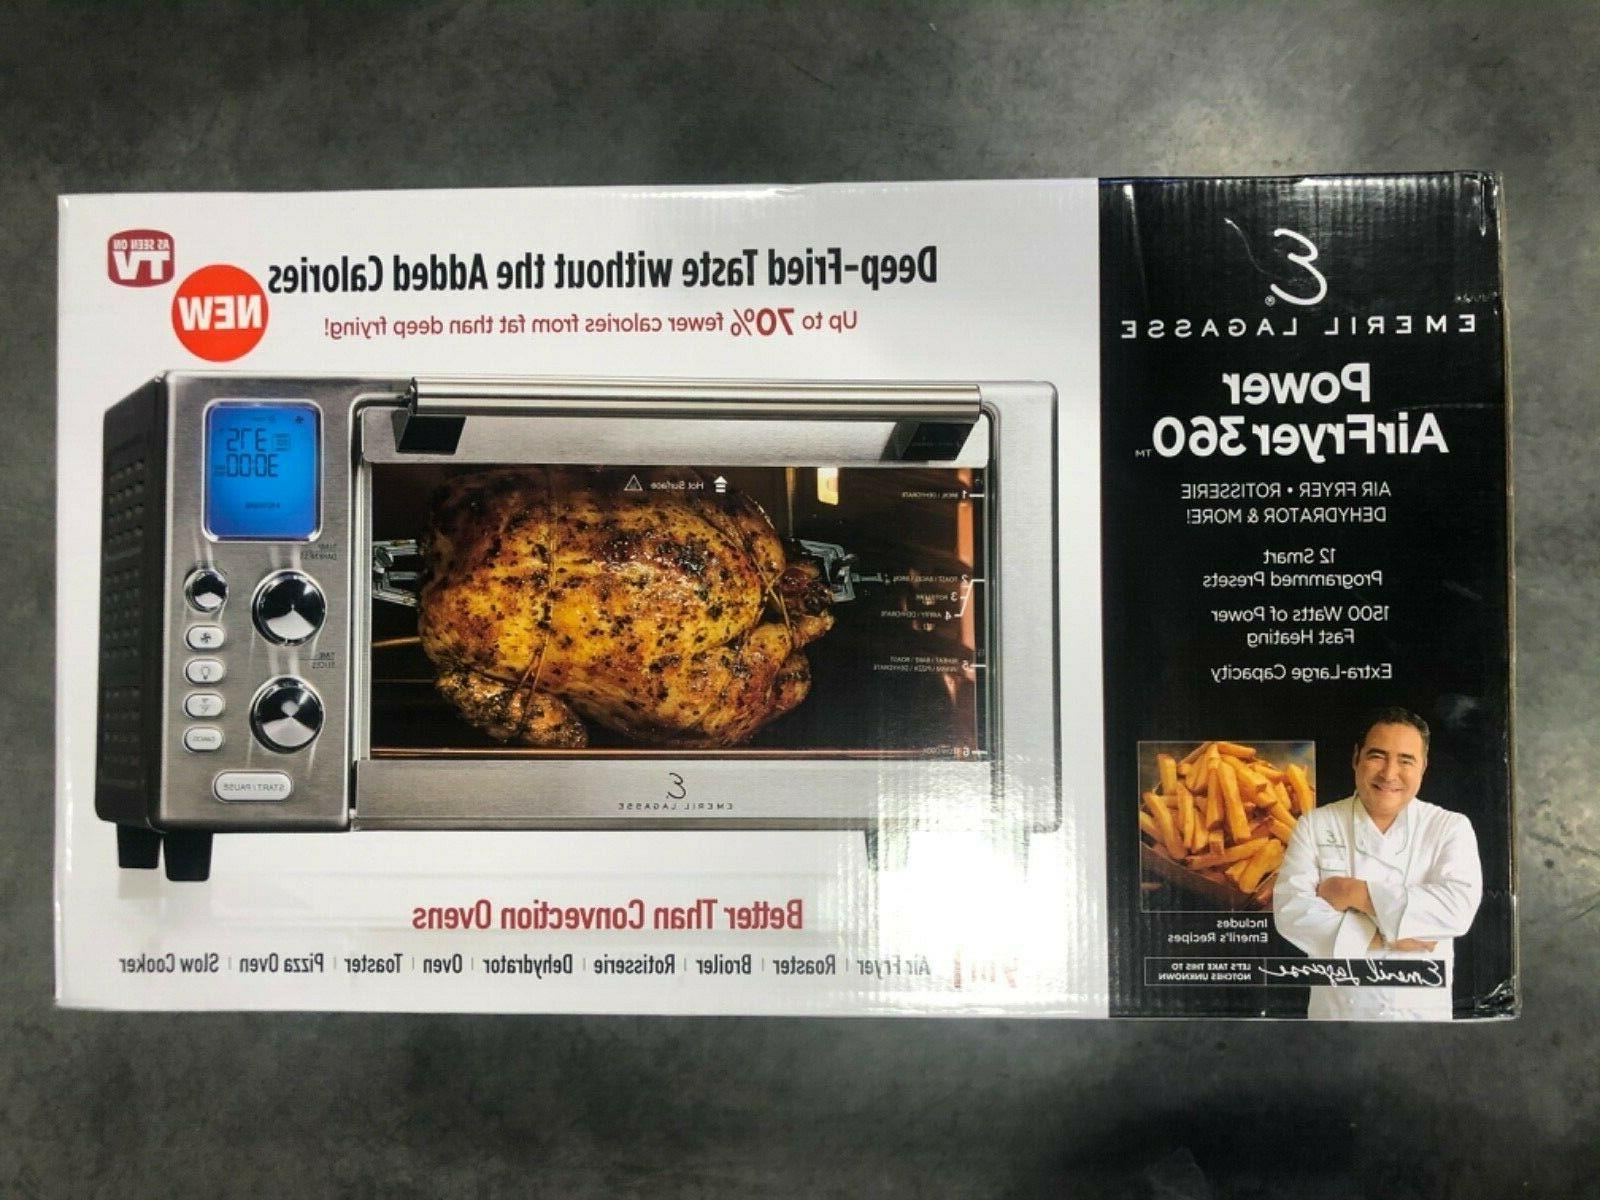 air fry toaster oven brushed stainless steel